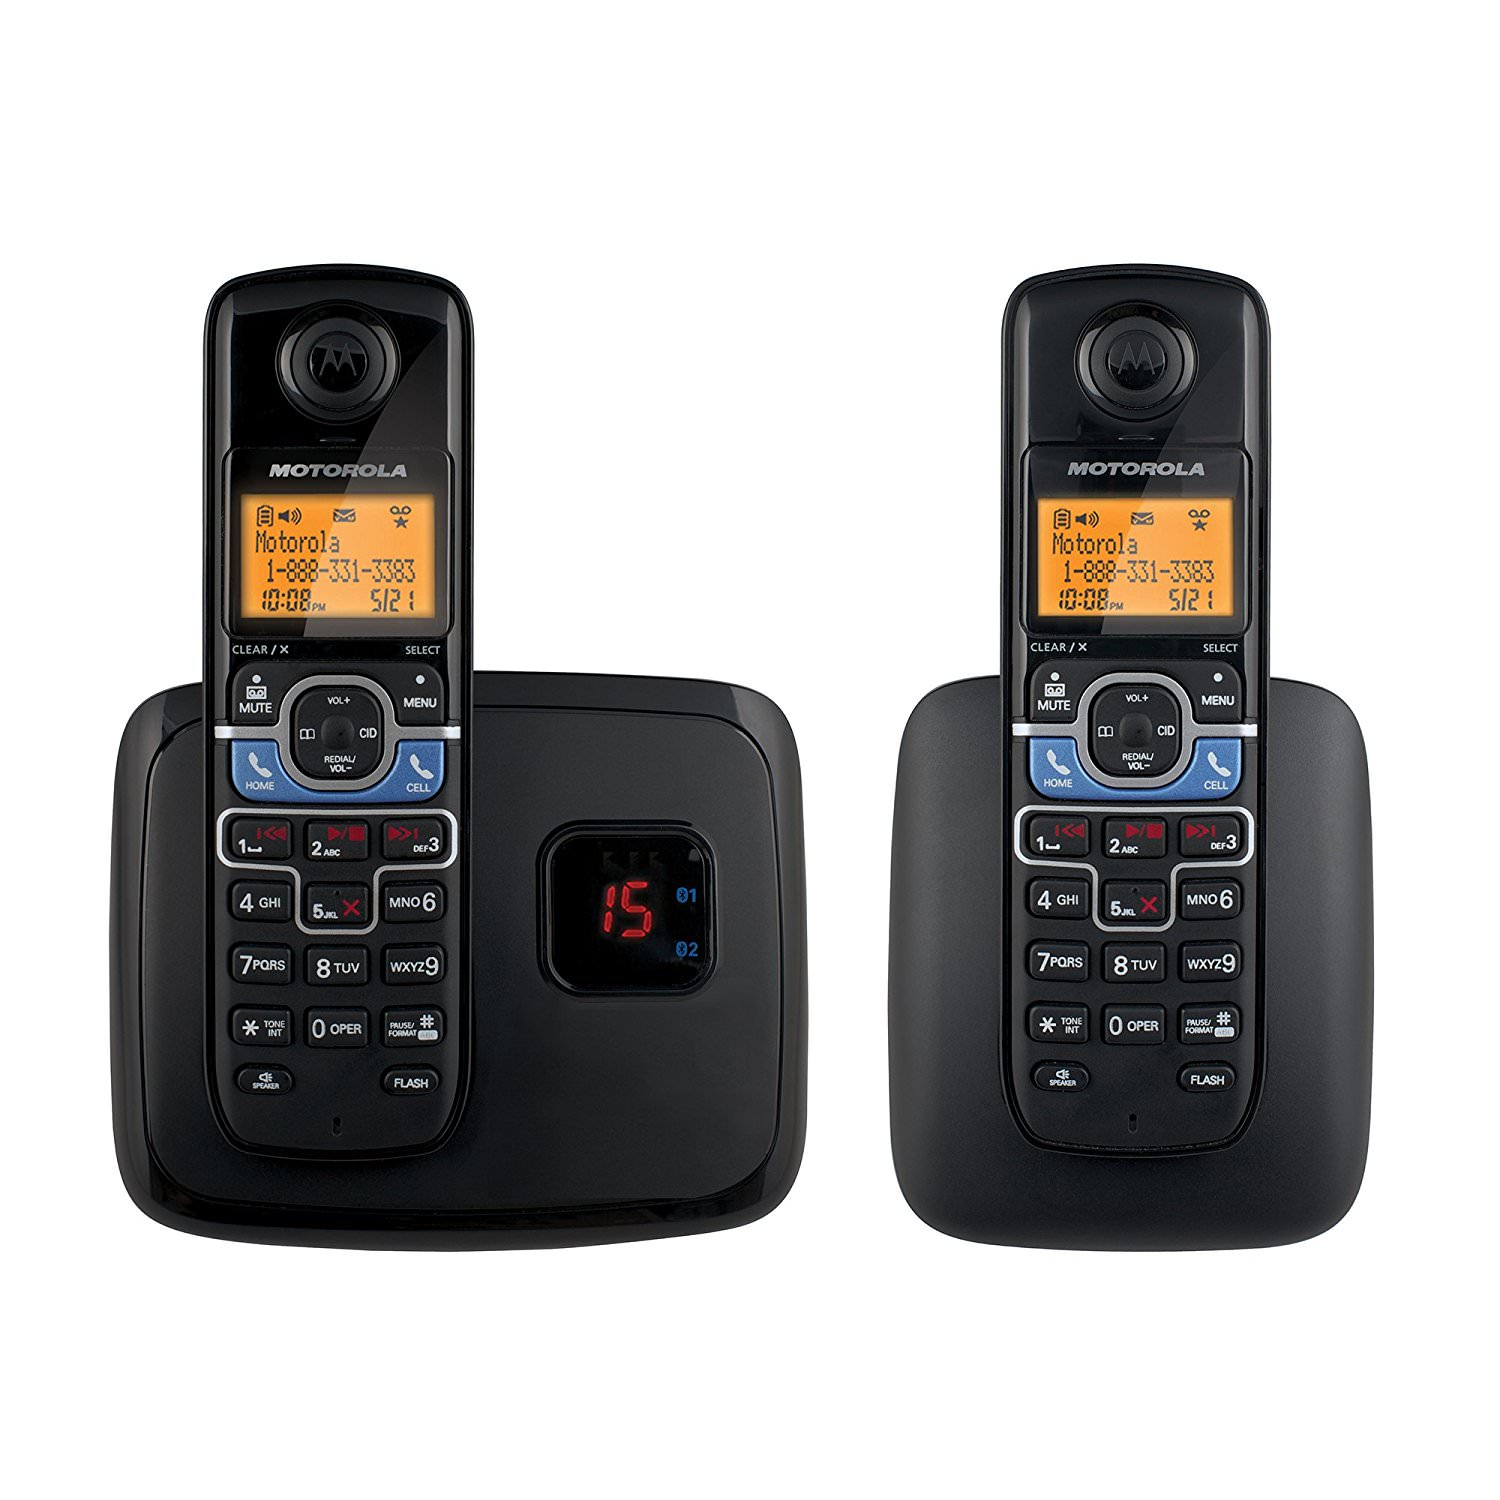 Motorola L702BT Cordless Phone with Mobile Bluetooth Linking